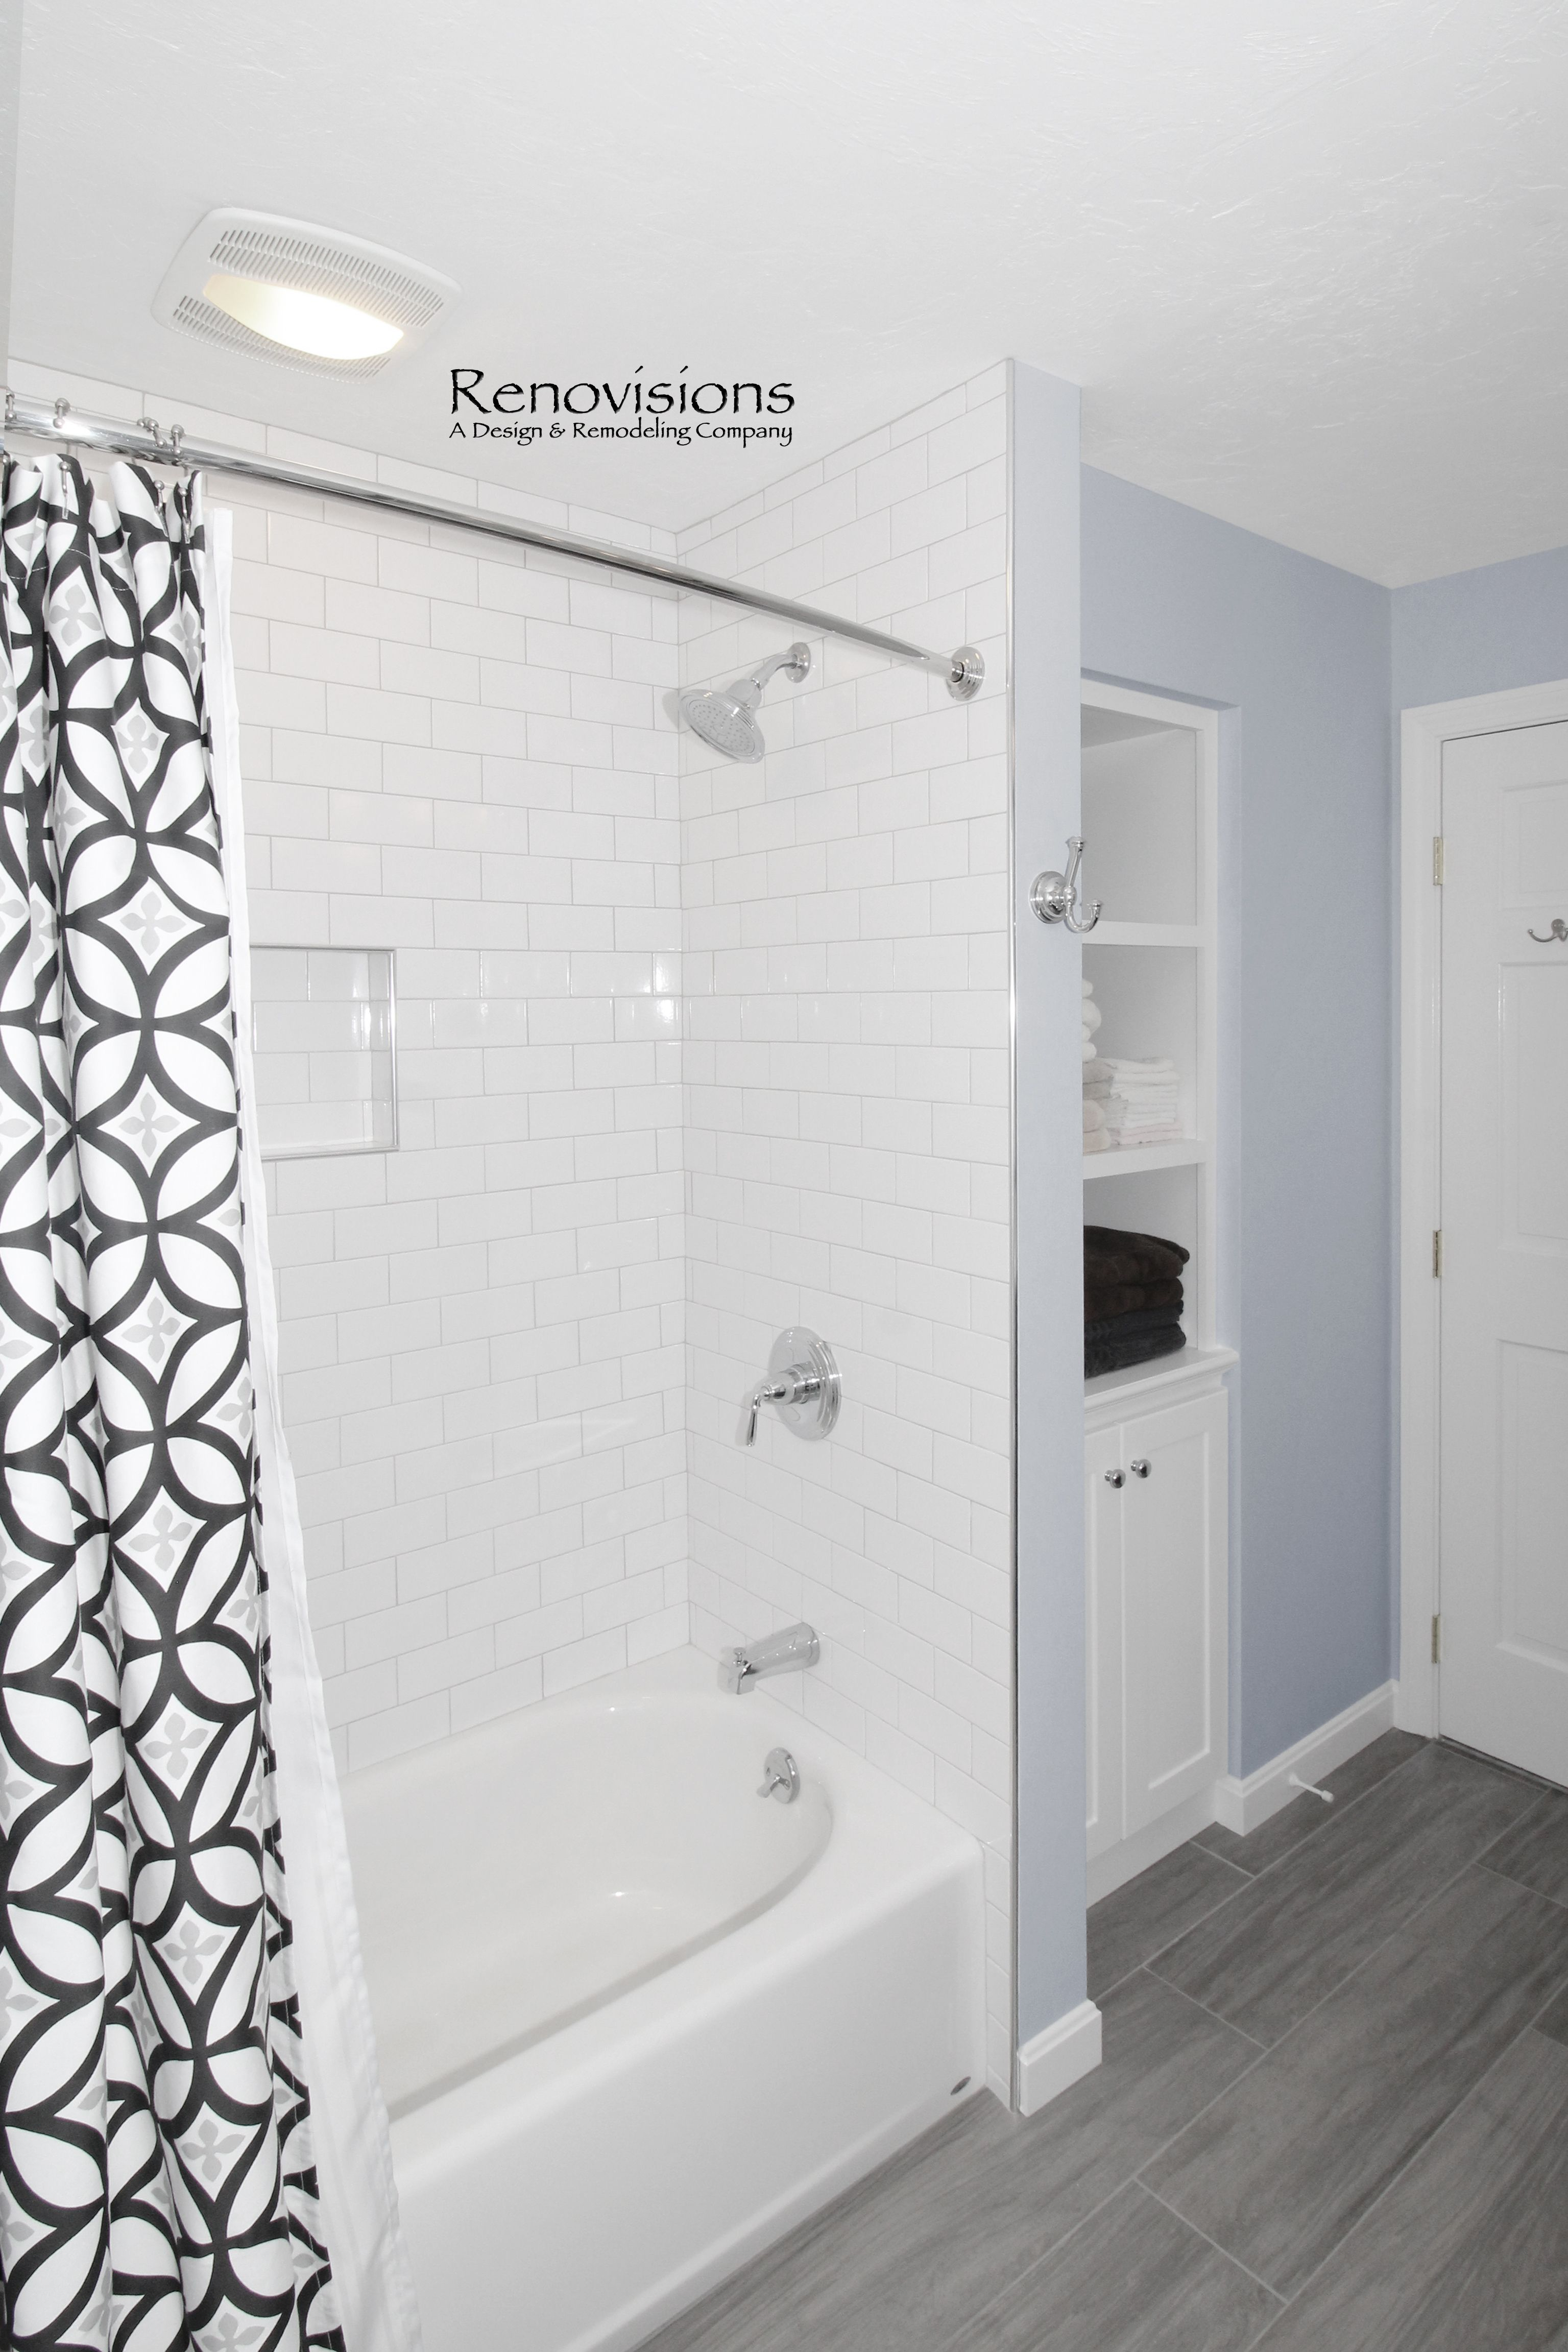 Full bathroom remodel by Renovisions in Norwell, MA. Wood-look ...